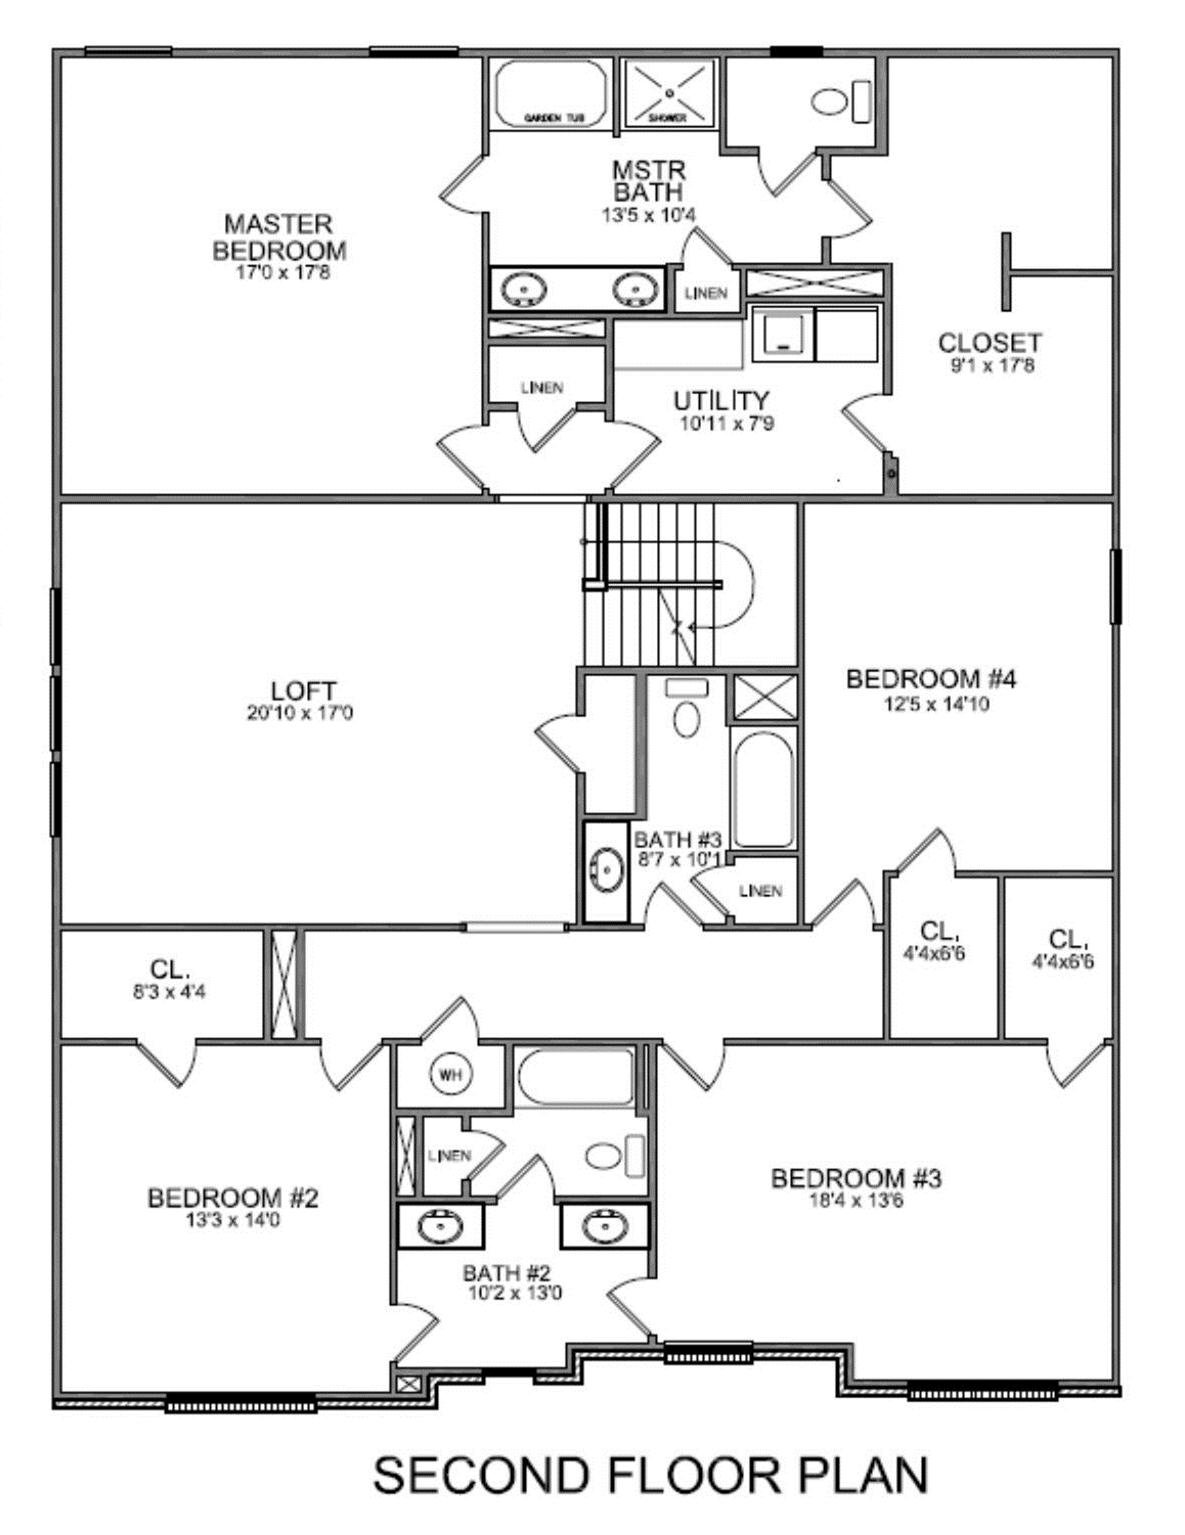 new floor plan - ^